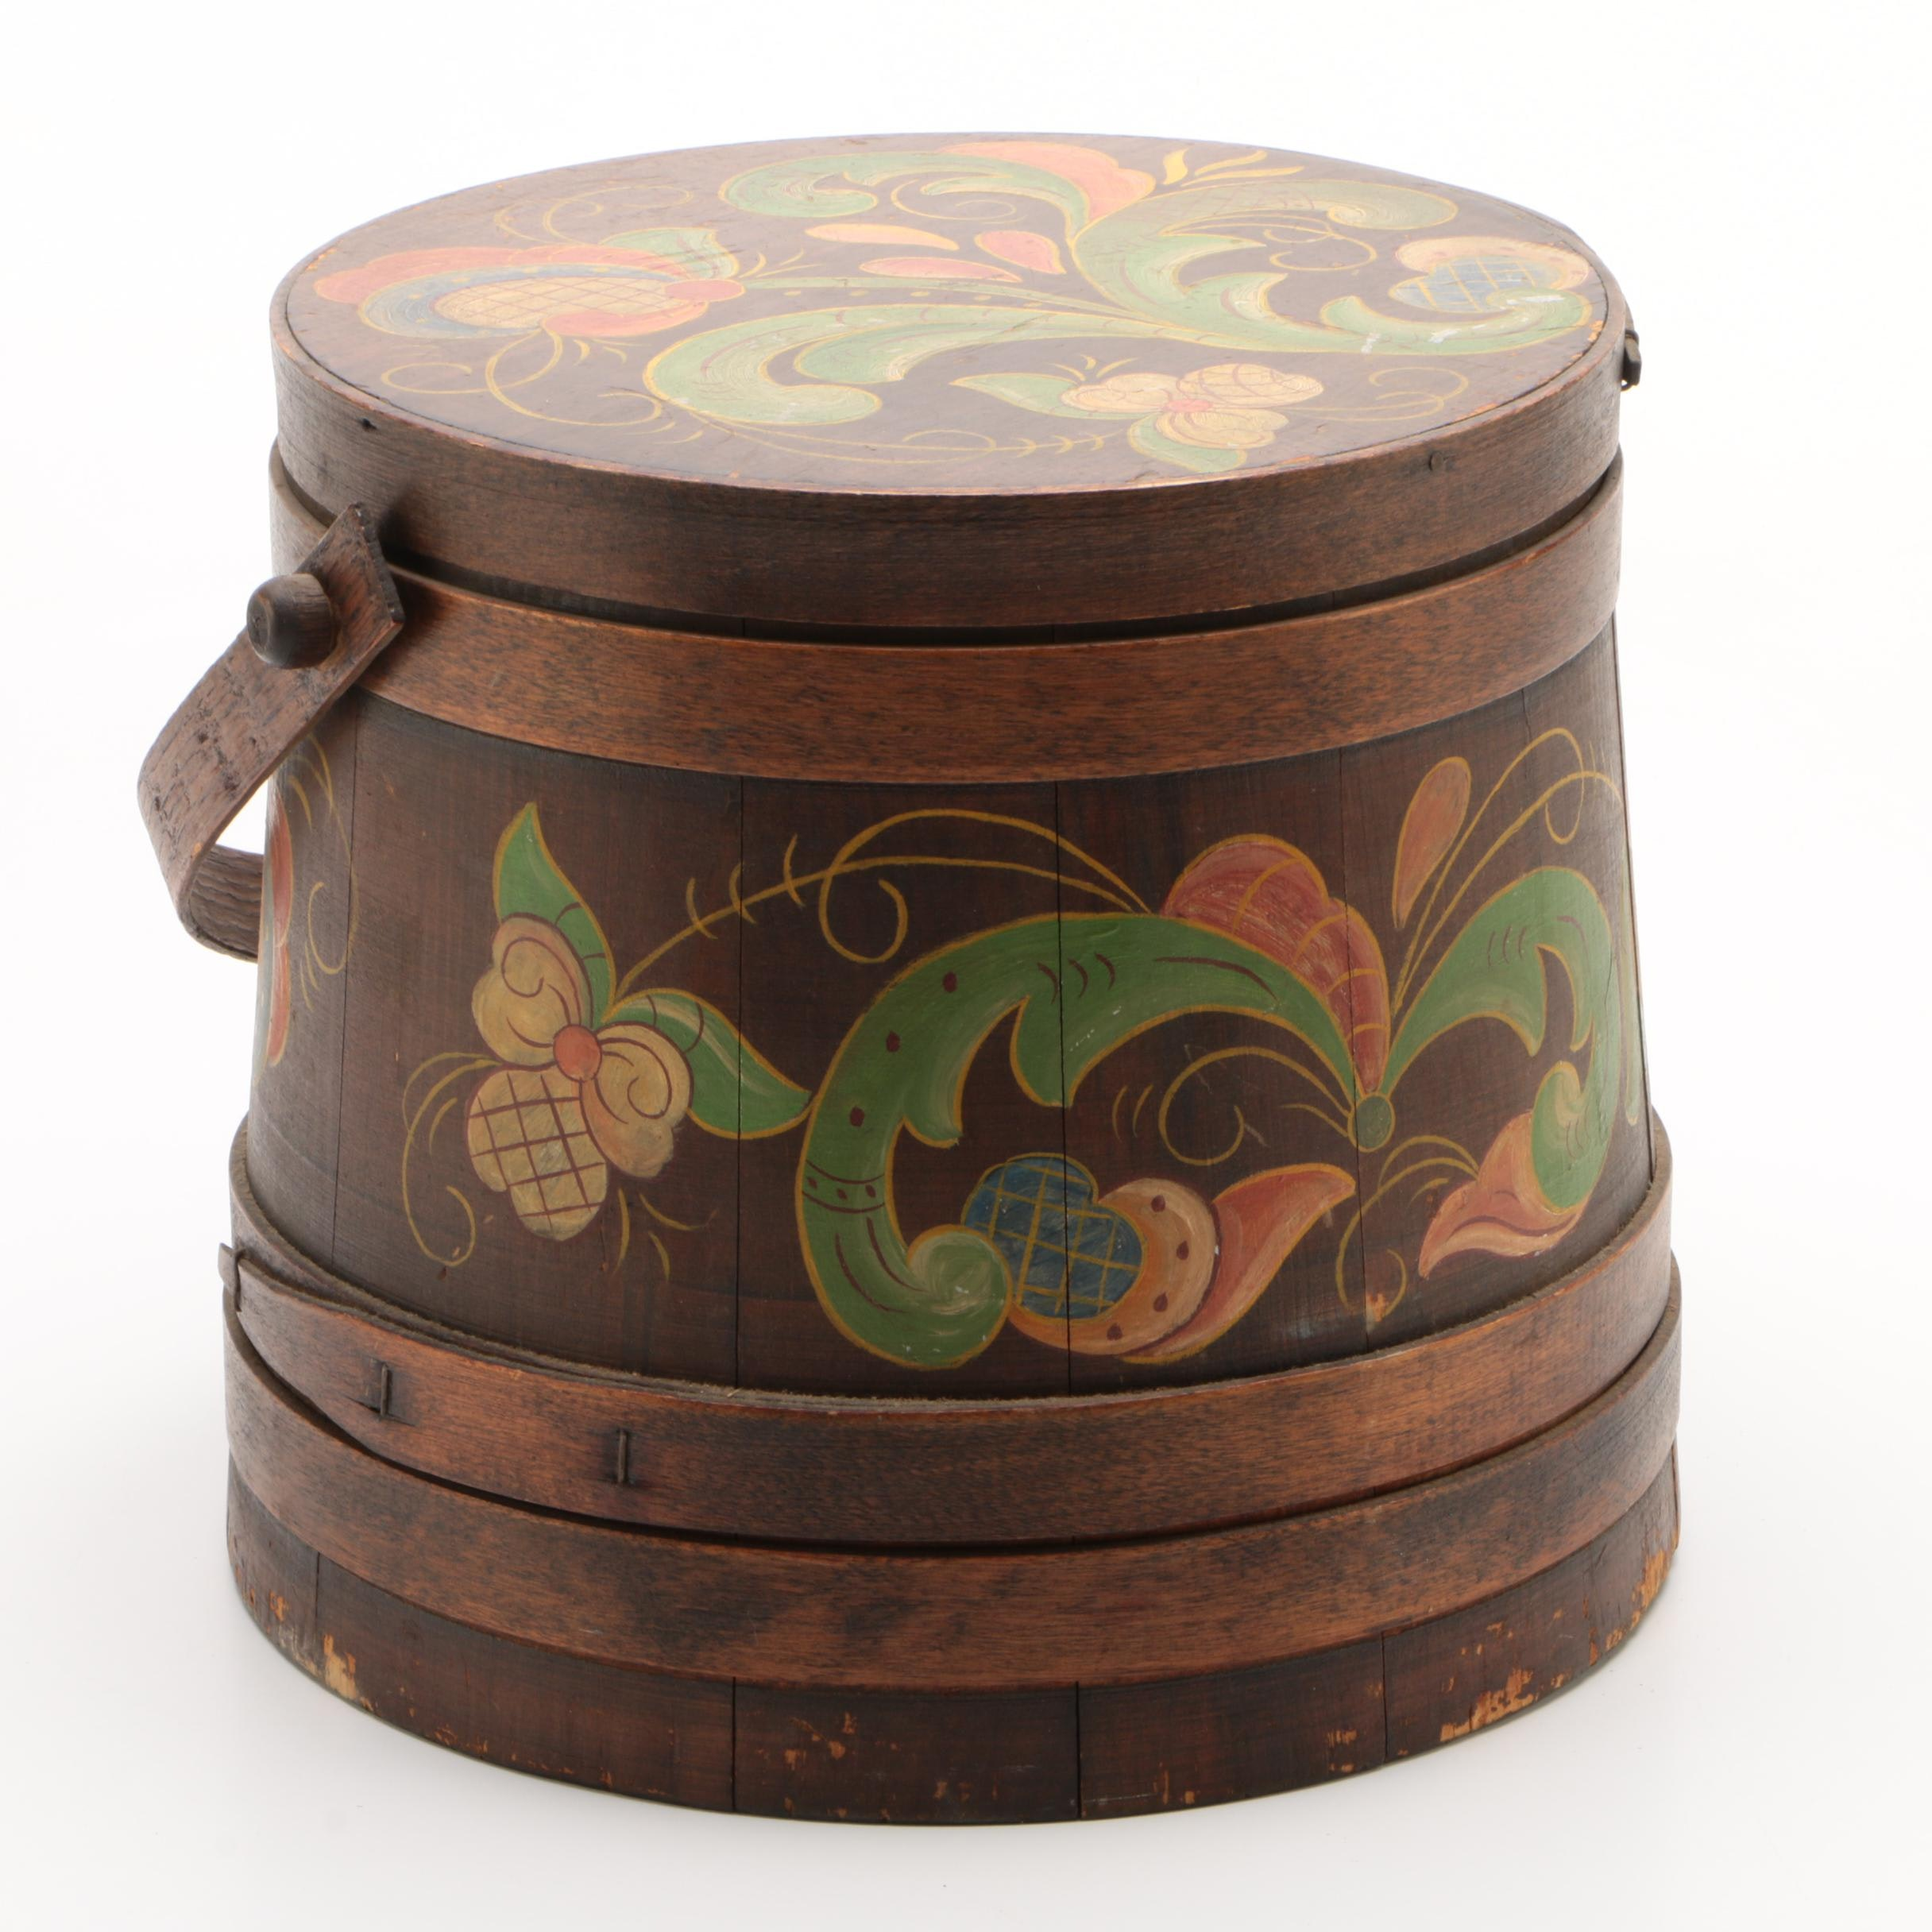 Colonial Revival Hand-Painted Wooden Firkin Sugar Bucket, Late 19th Century